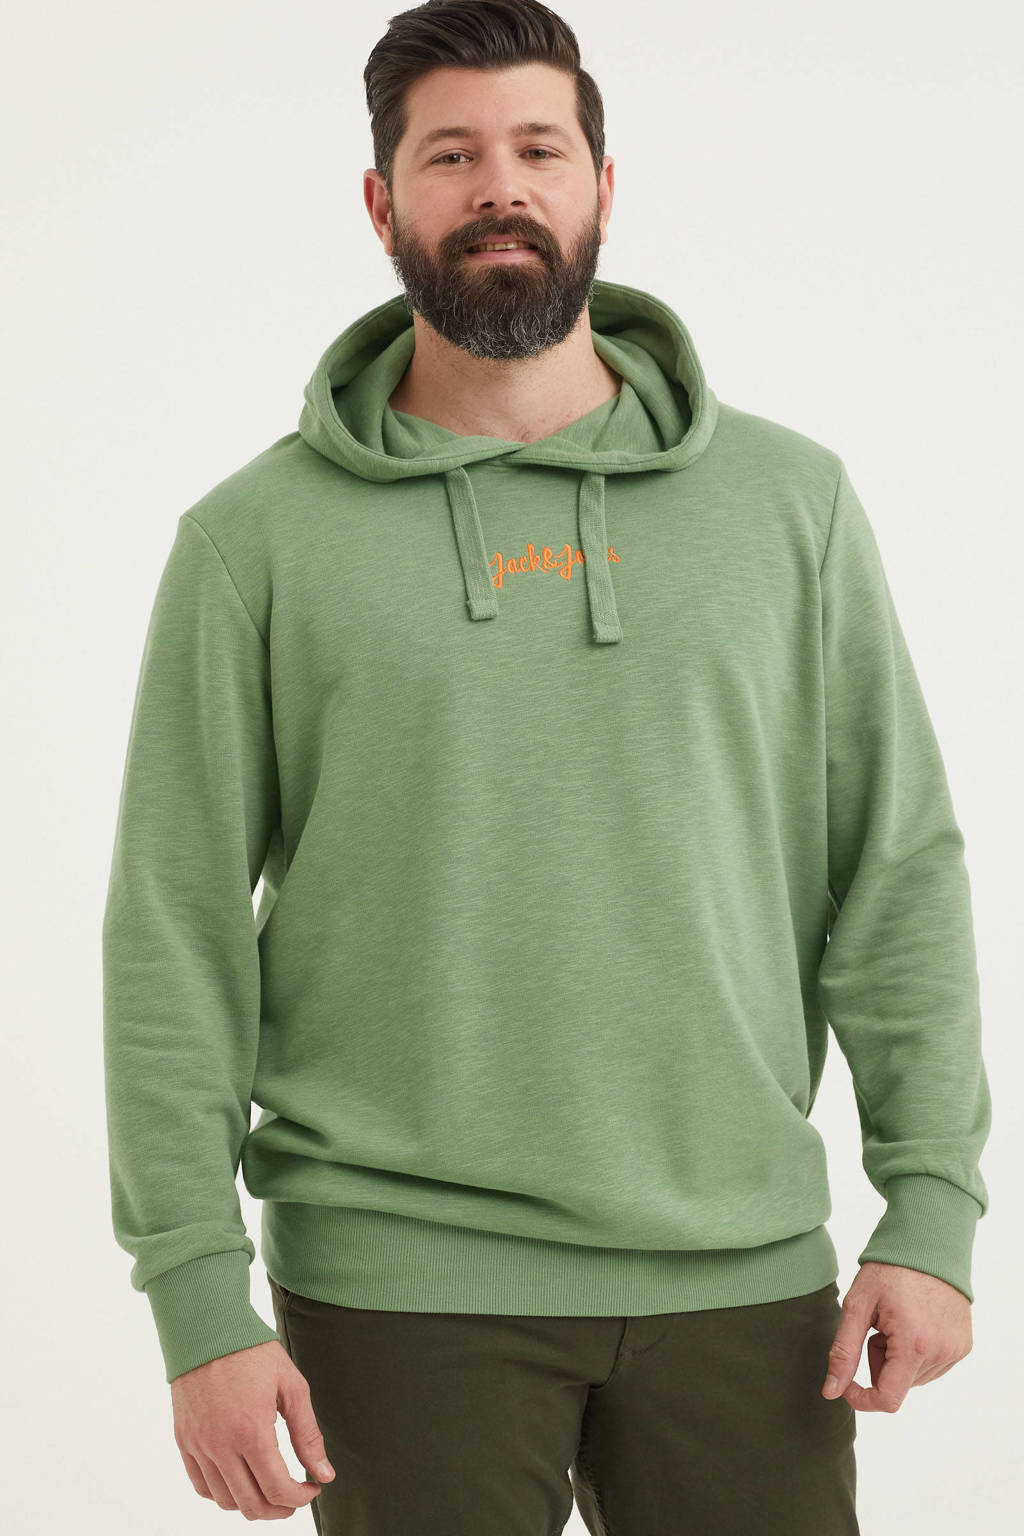 JACK & JONES PLUS SIZE hoodie Stockholm Plus Size groen, Groen